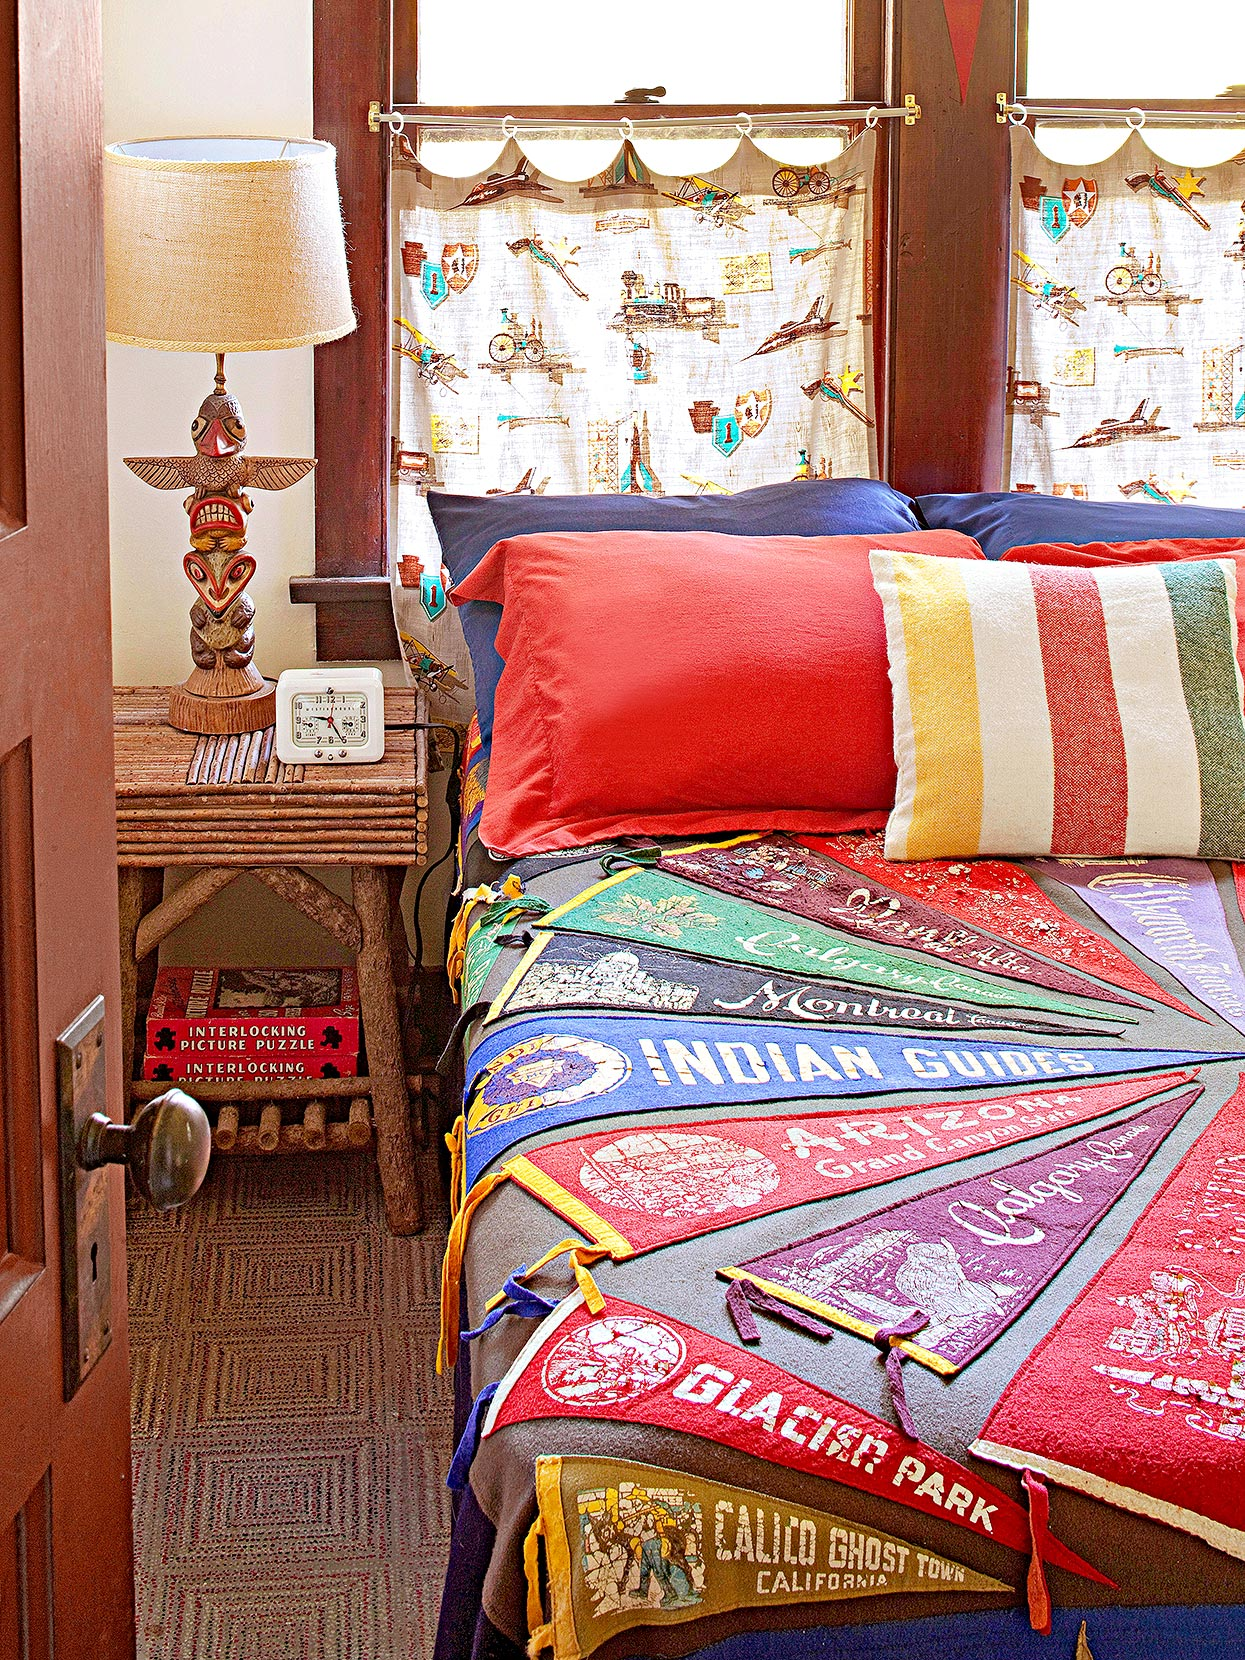 souvenir pennants stitched to quilt in rustic bedroom